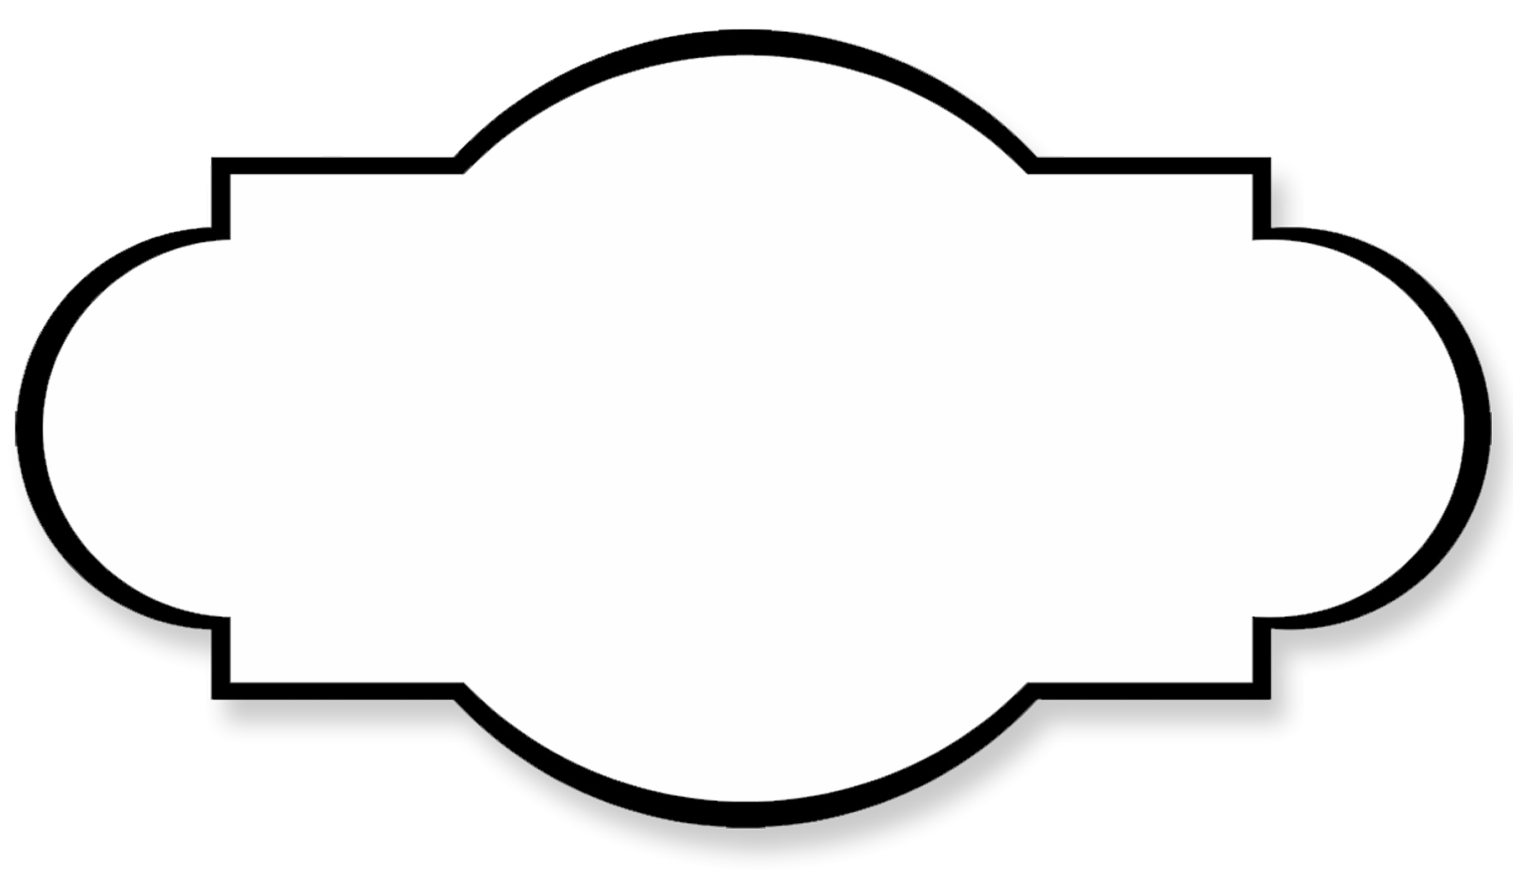 Black and white label png. Collection of clipart